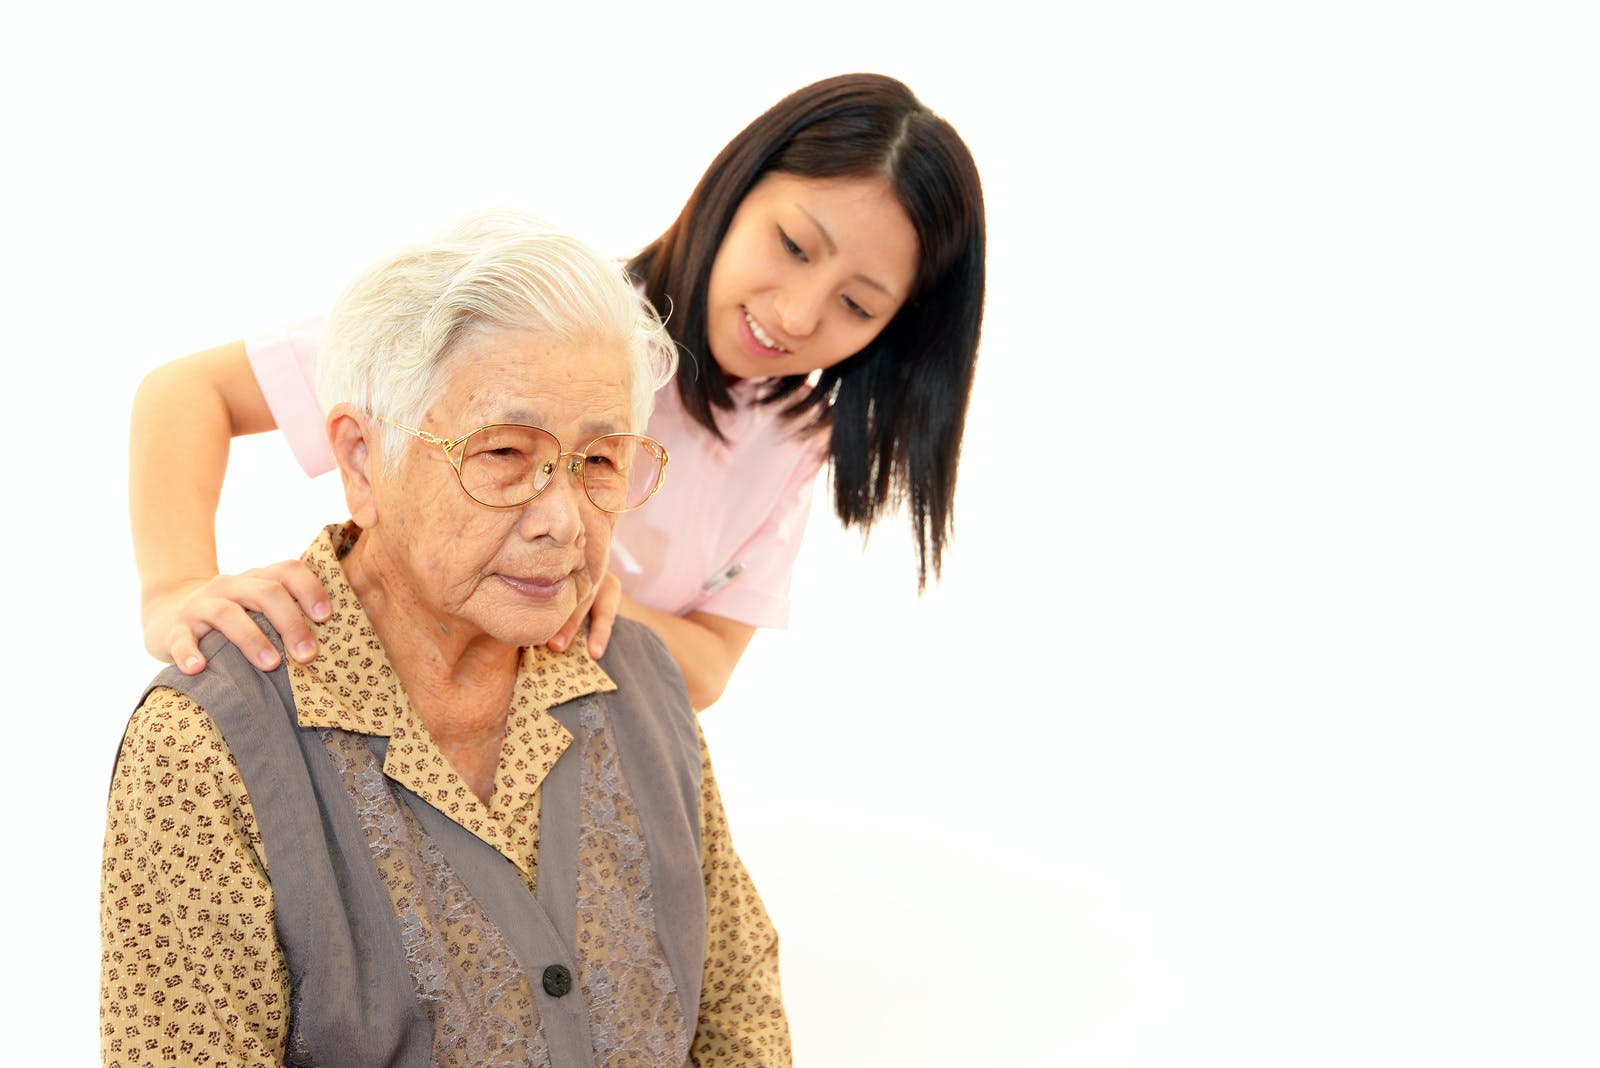 Senior woman with her home caregiver isolated on white background